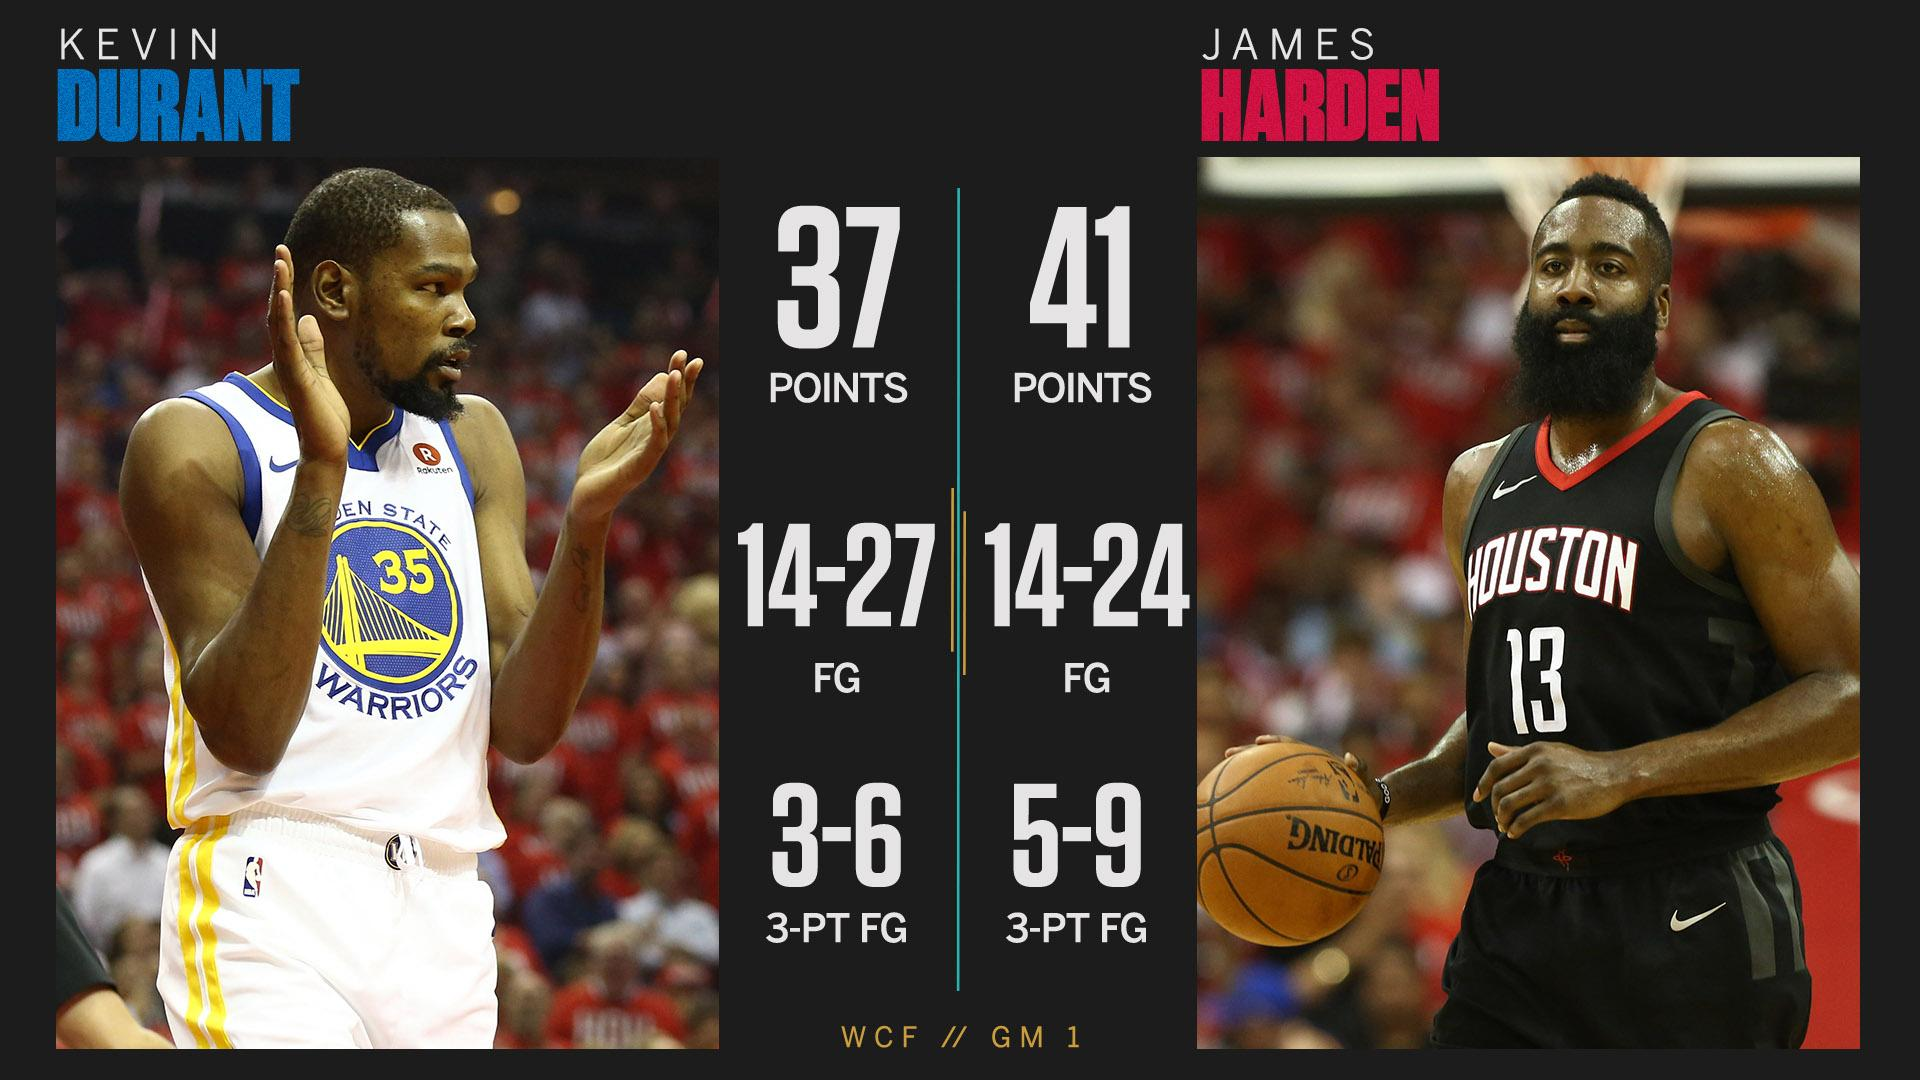 The matchup we've been waiting for did not disappoint. https://t.co/9wo6LGrbd8